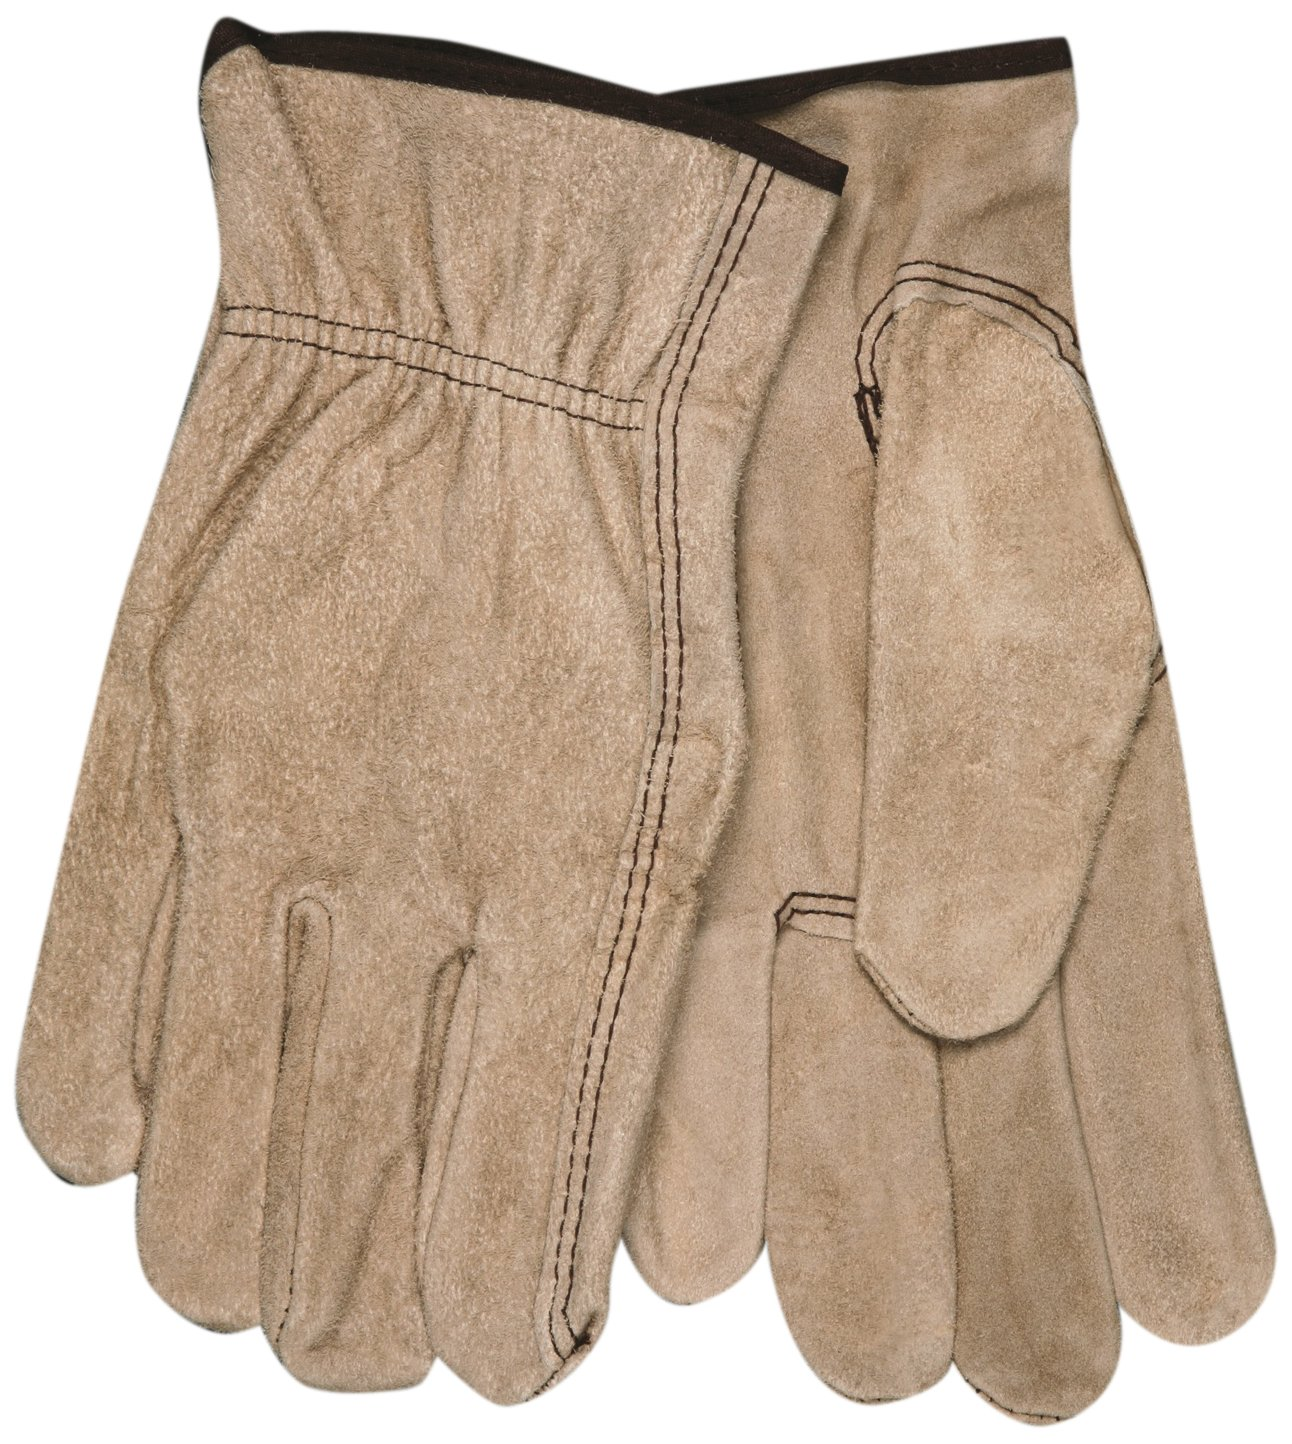 MCR Safety 3130S Regular Grade Cow Split Leather Driver Unlined Men's Gloves with Keystone Thumb, Brown, Small, 1-Pair by MCR Safety  B009A4DS8S